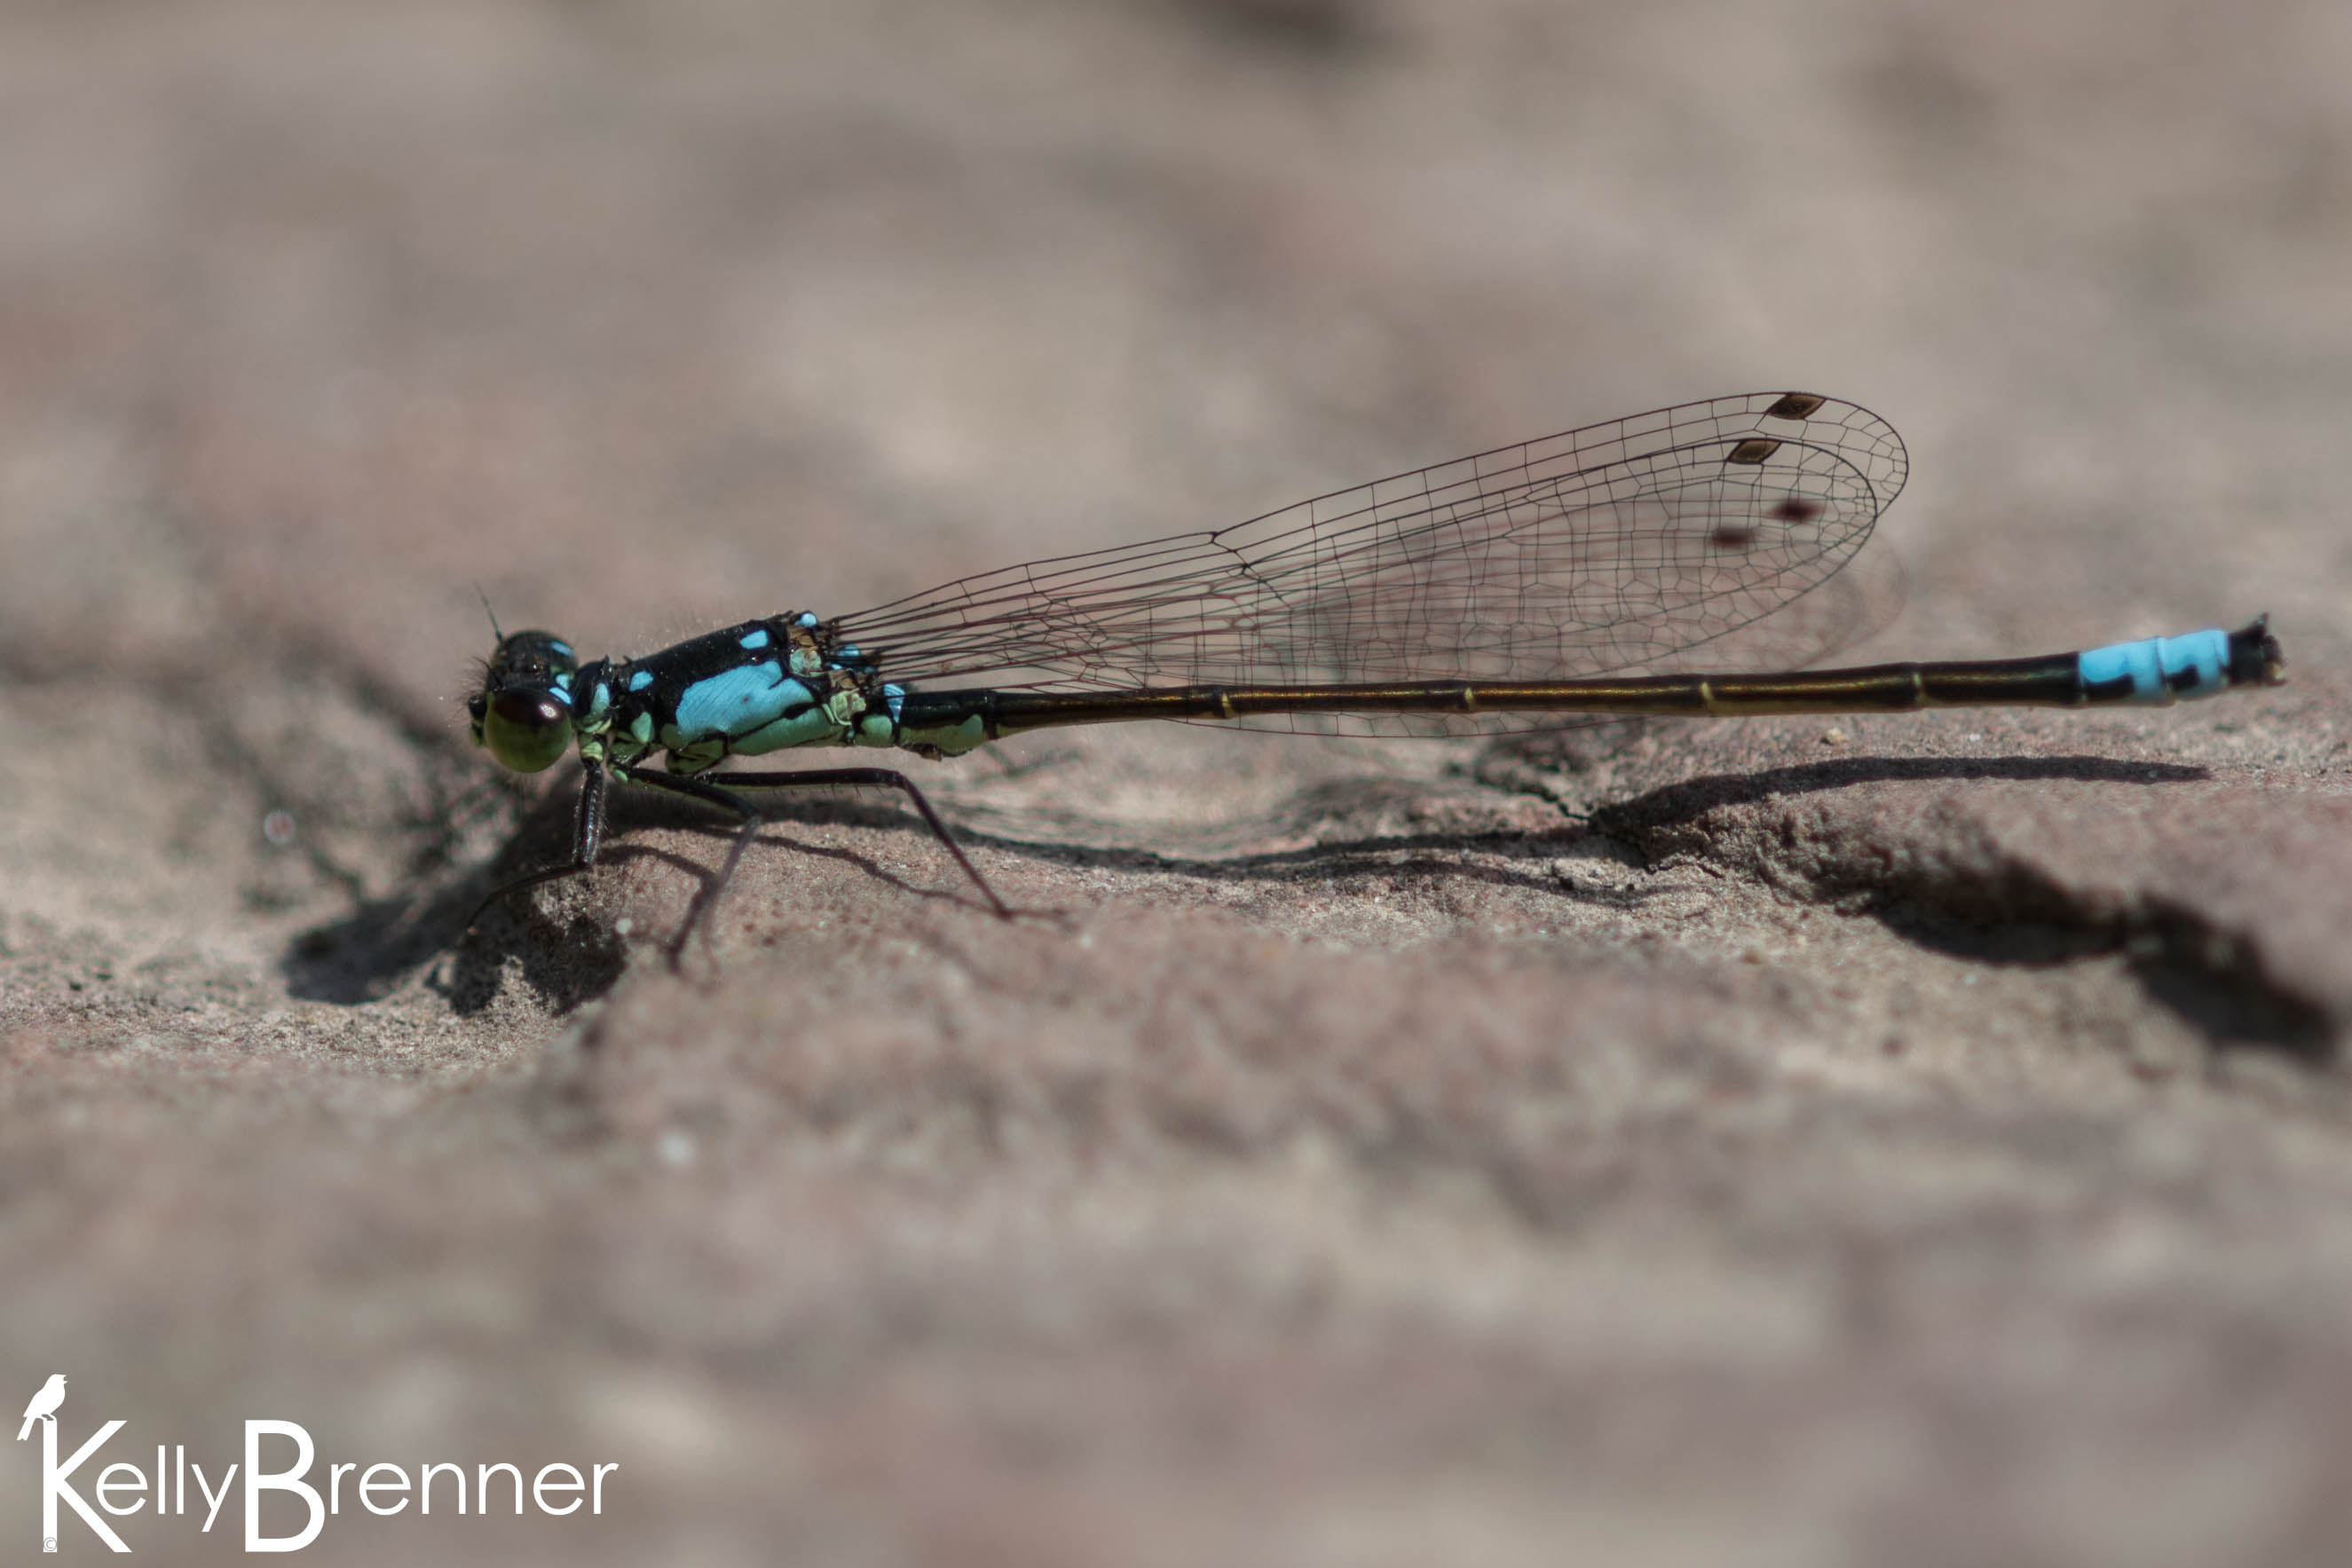 Field Journal: First Dragonfly of the Year